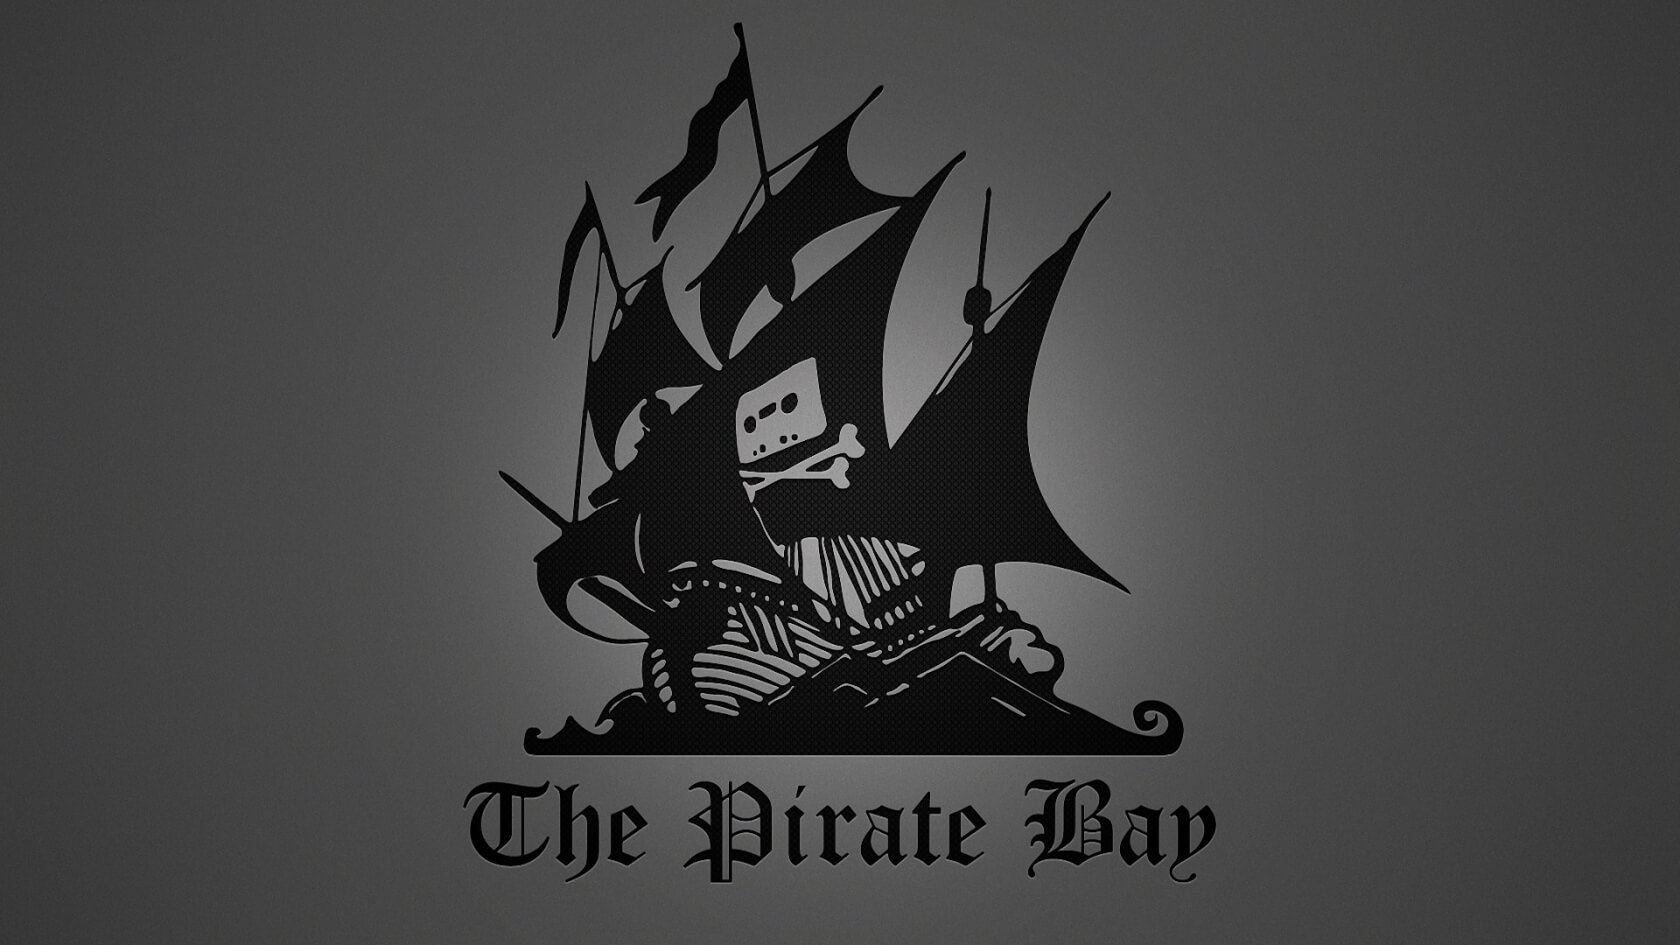 The Pirate Bay founders lose another lawsuit, ordered to pay $477,000